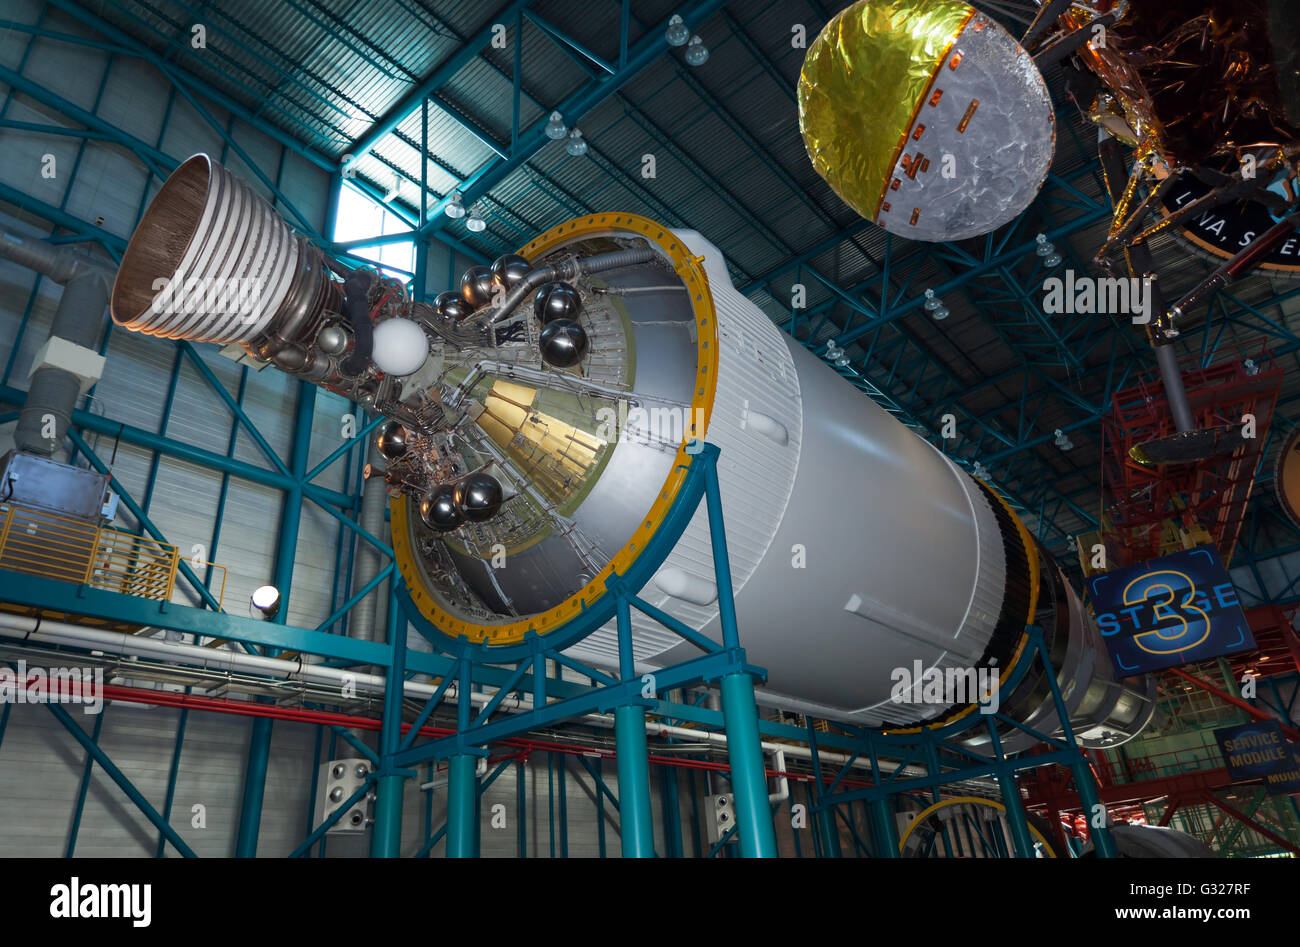 A view of the third stage of the Saturn V rocket, used by NASA, during the Apollo program to take Astronauts to - Stock Image